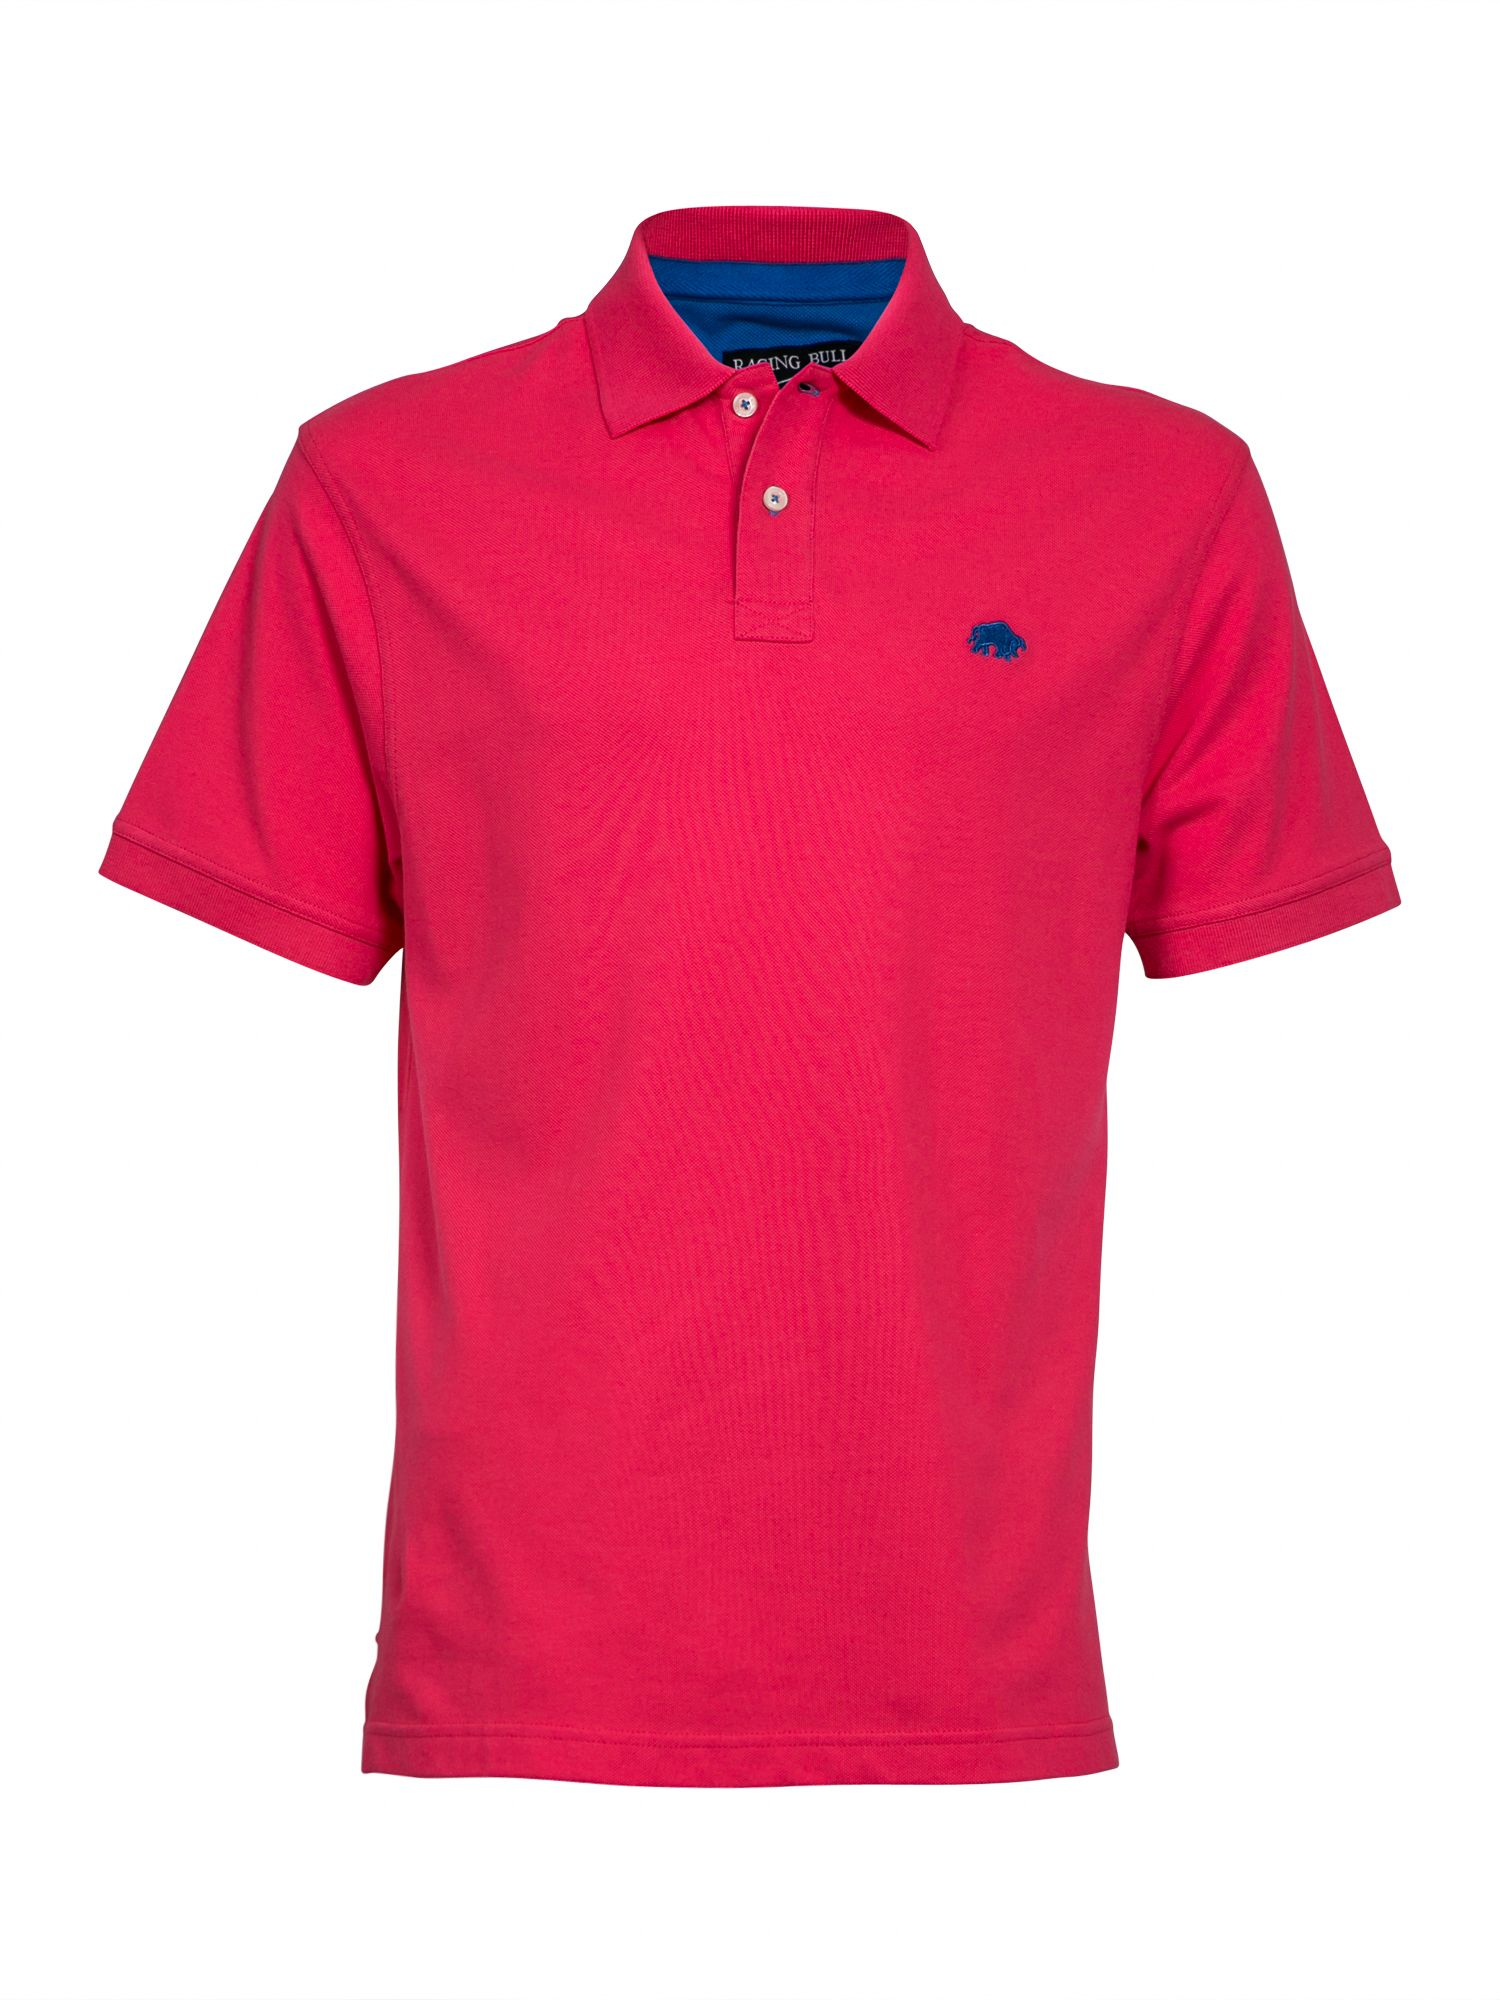 Men's Raging Bull Big & Tall New Signature Polo, Pink